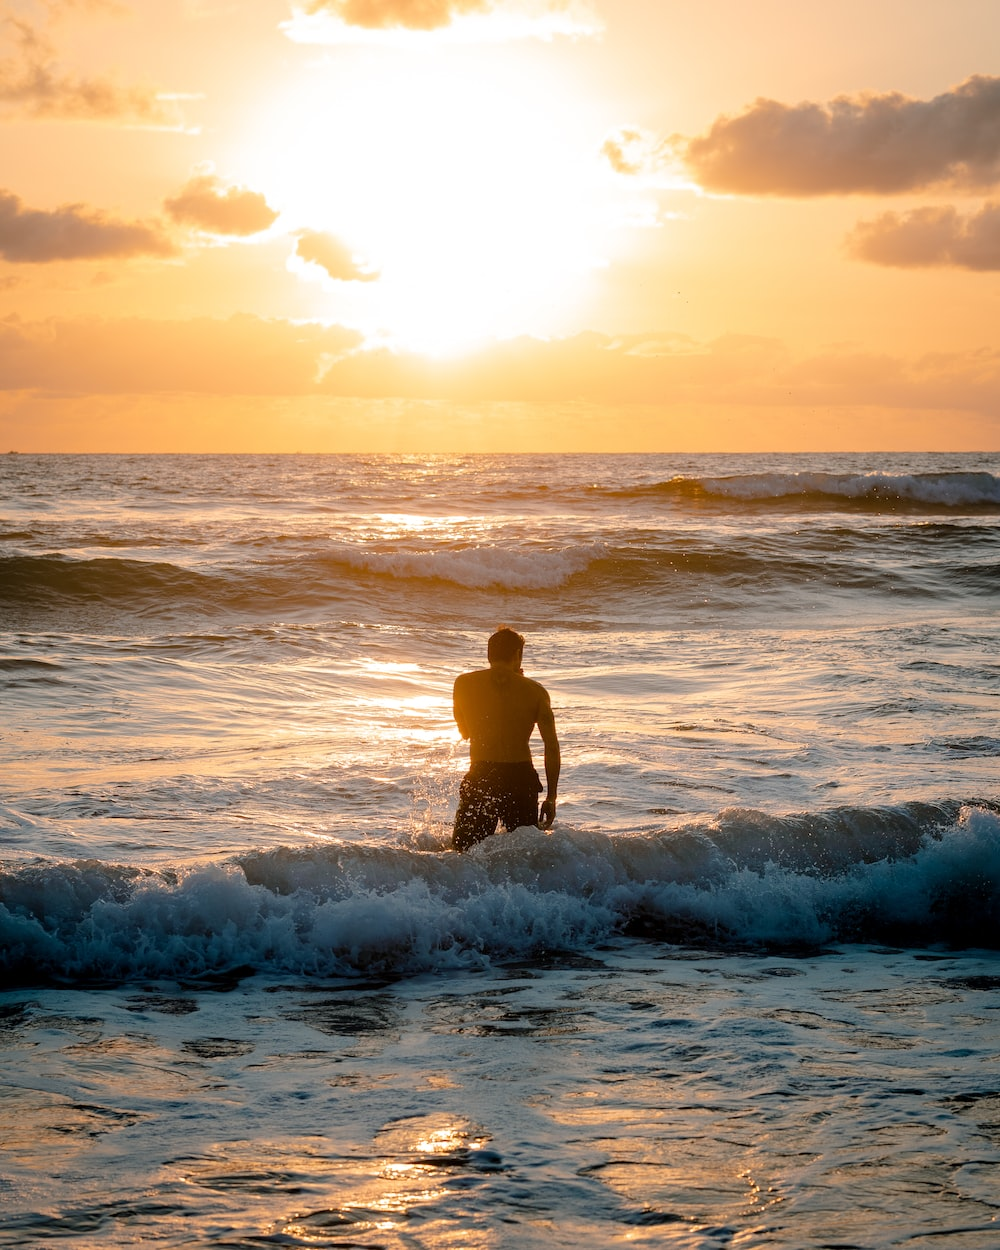 man in black shorts standing on sea waves during sunset